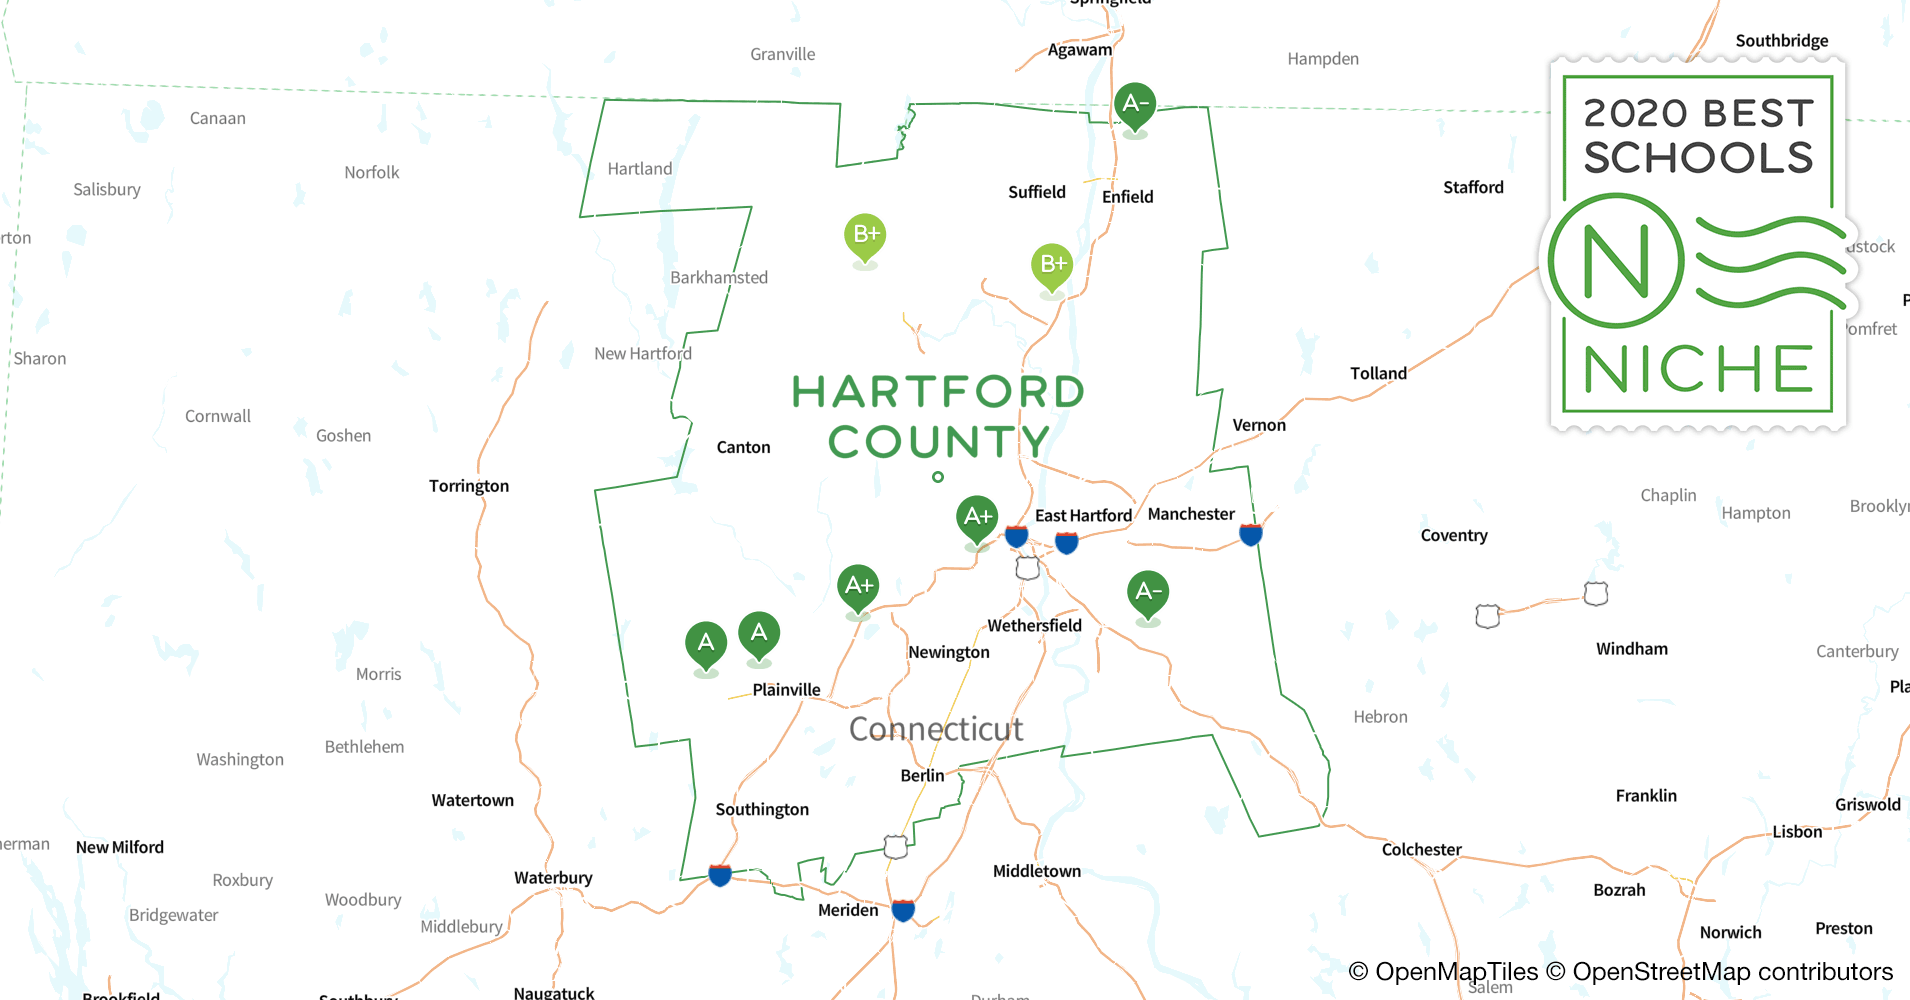 School Districts in Hartford County, CT - Niche